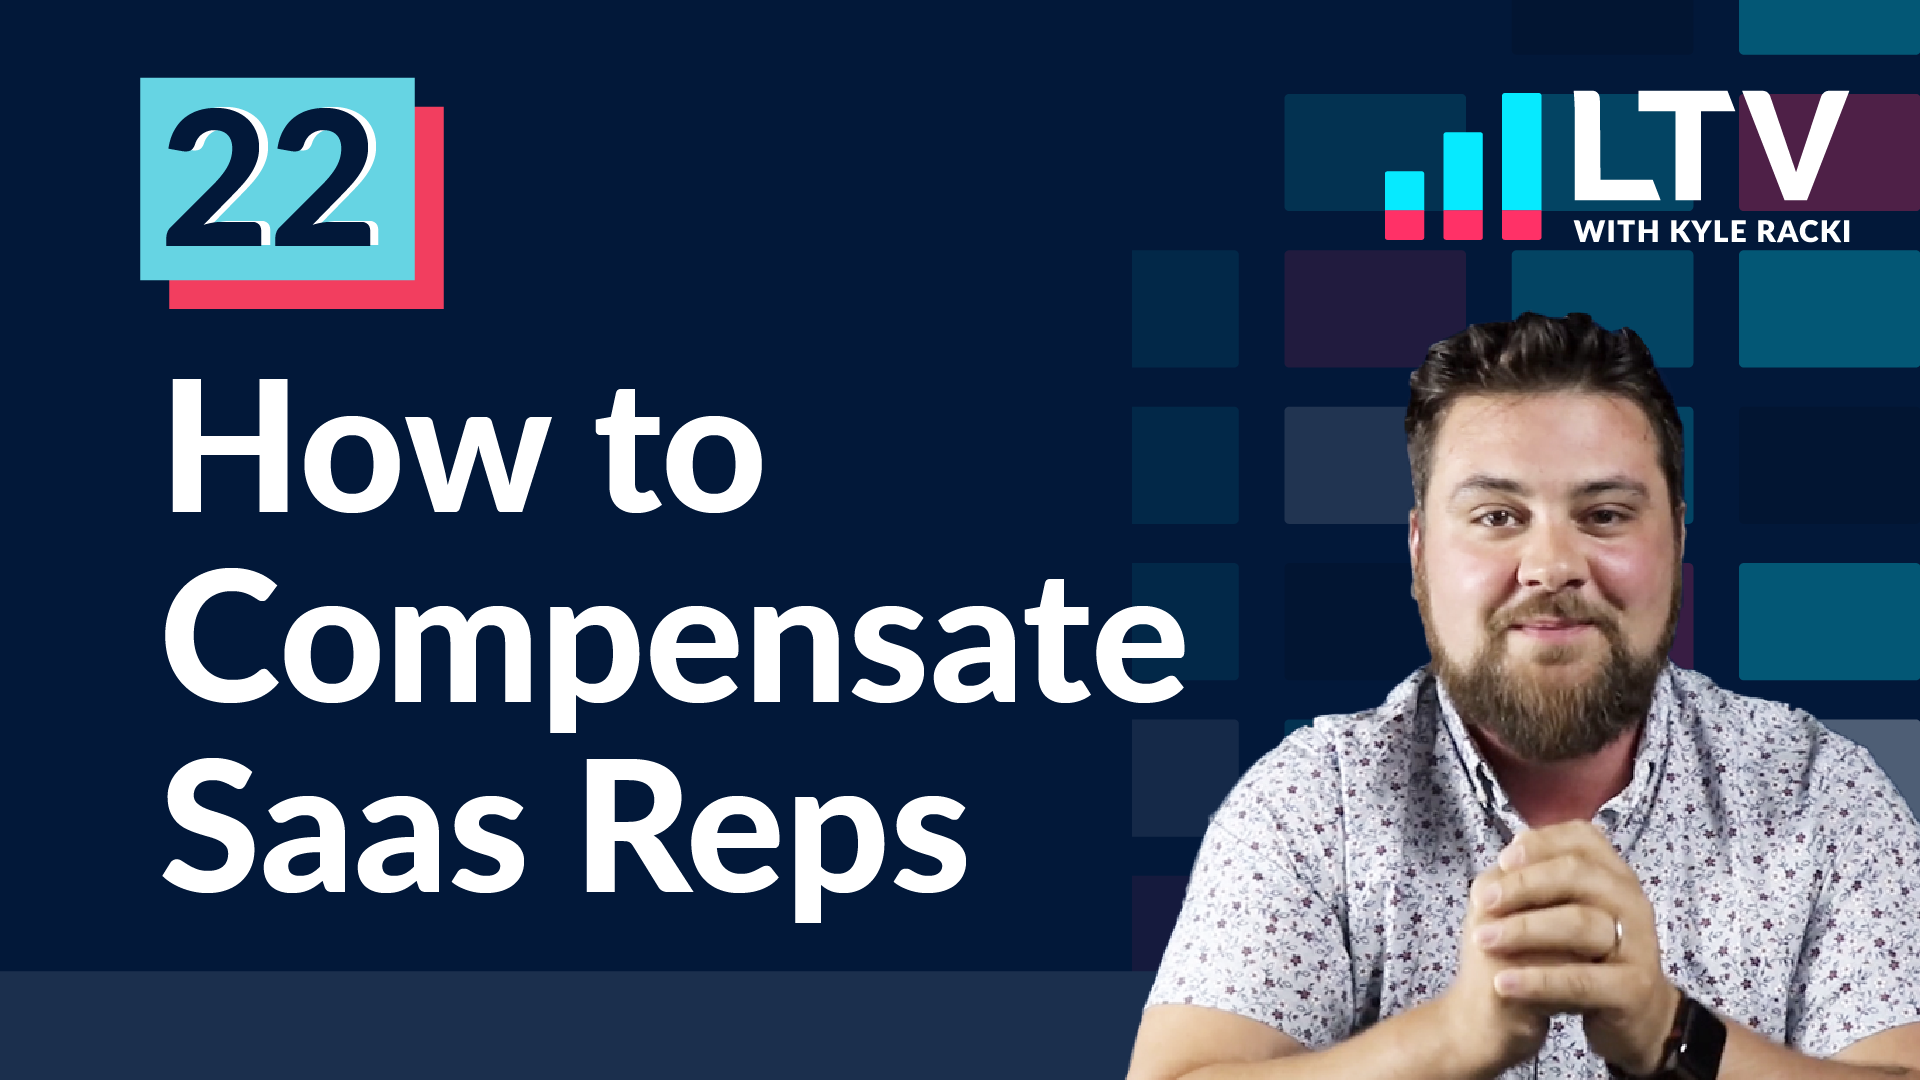 LTV Podcast Episode 22: How to Compensate Saas Reps